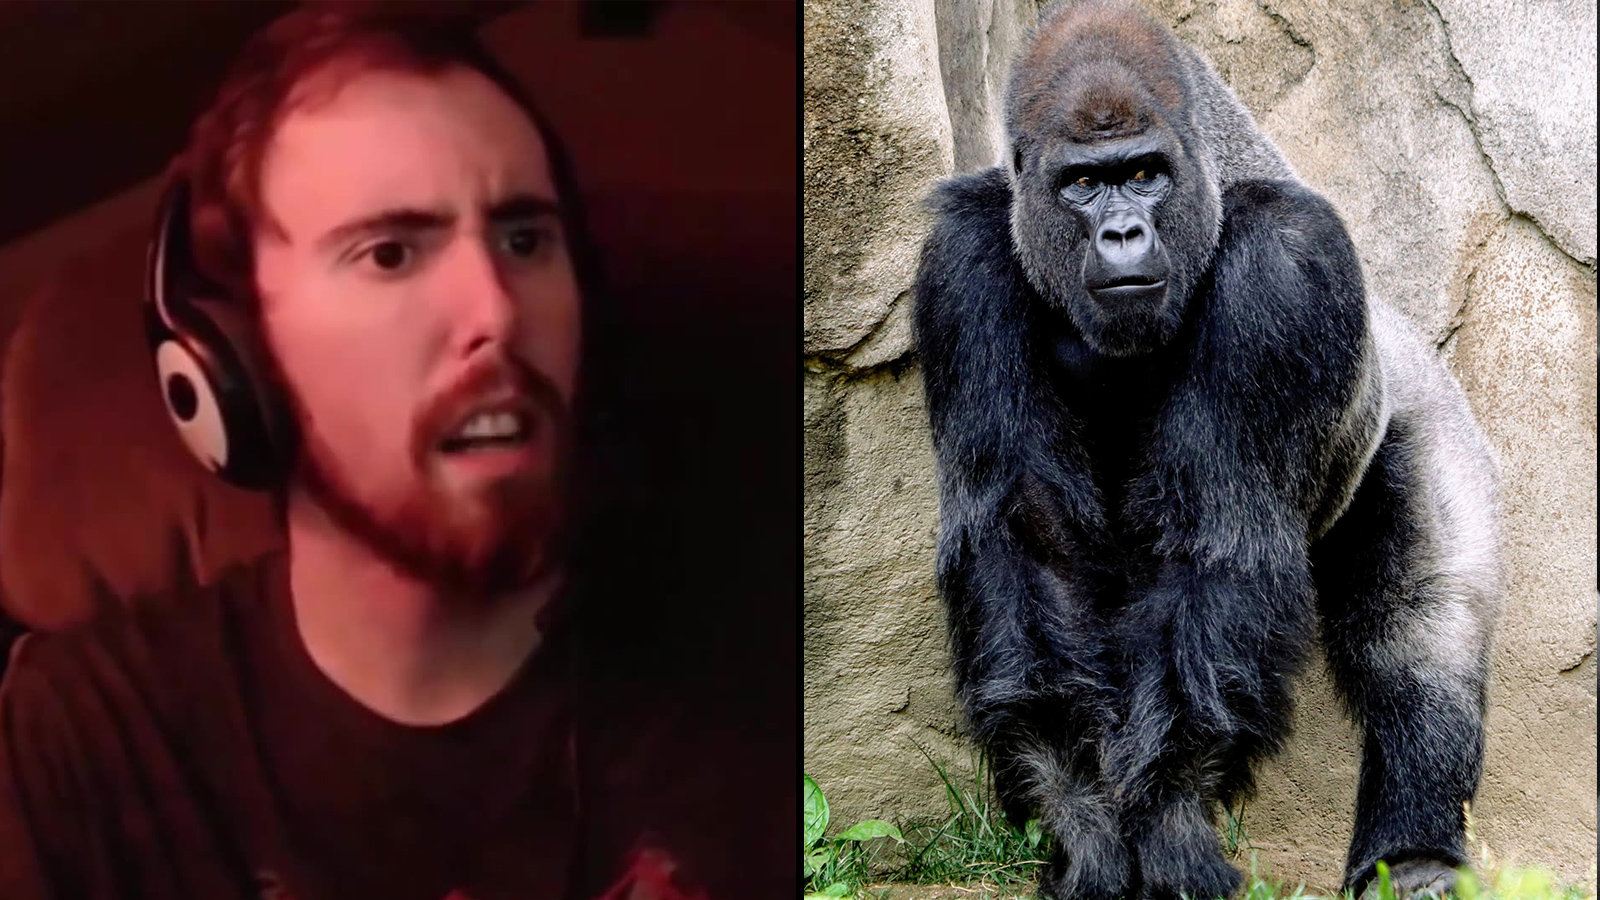 Asmongold streaming on Twitch alongisde a picture of a gorilla.